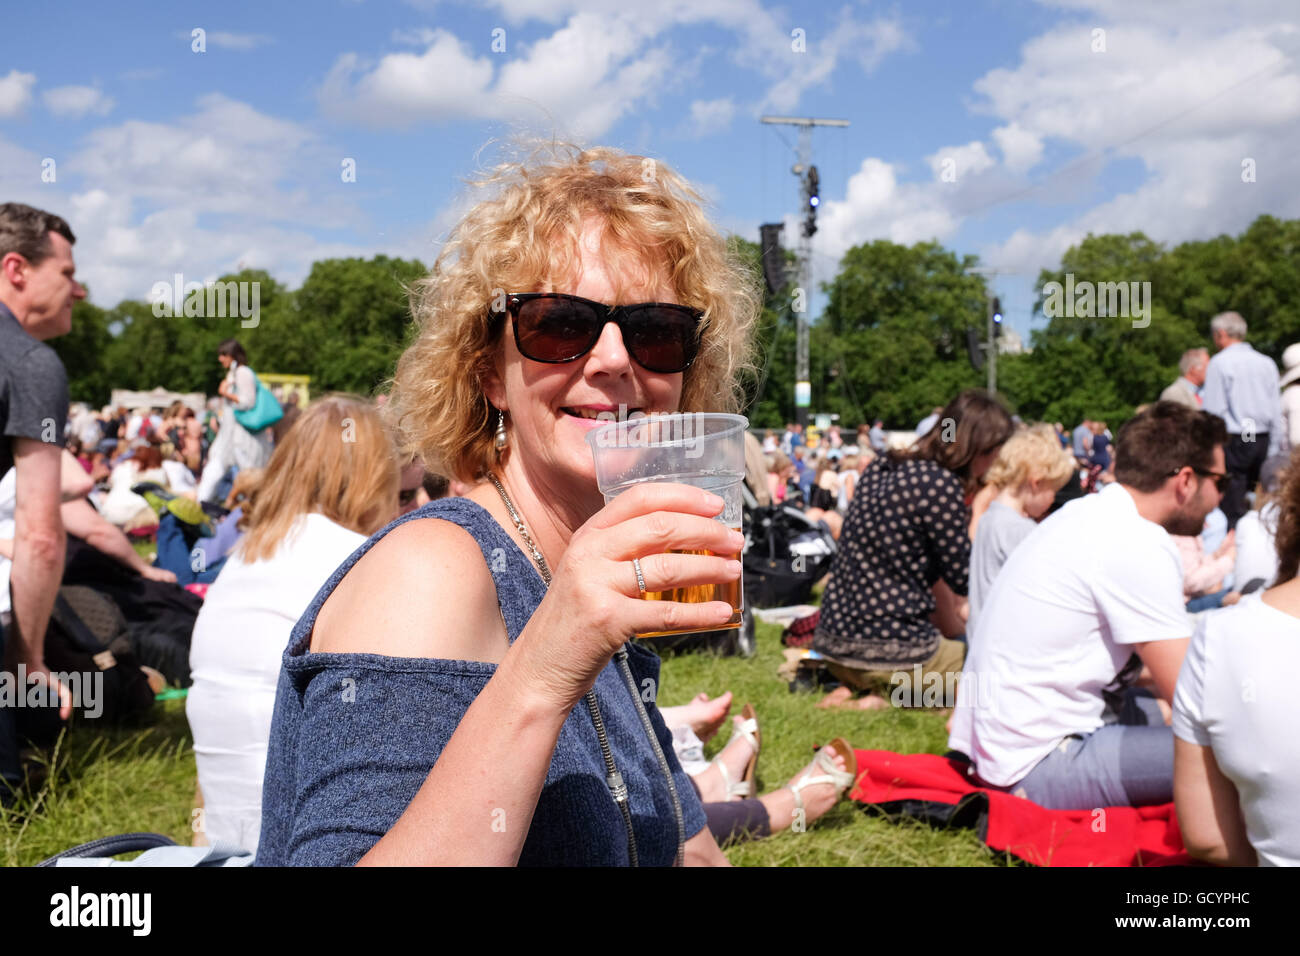 Woman enjoying a pint of beer outside in a plastic glass in summer UK - Stock Image